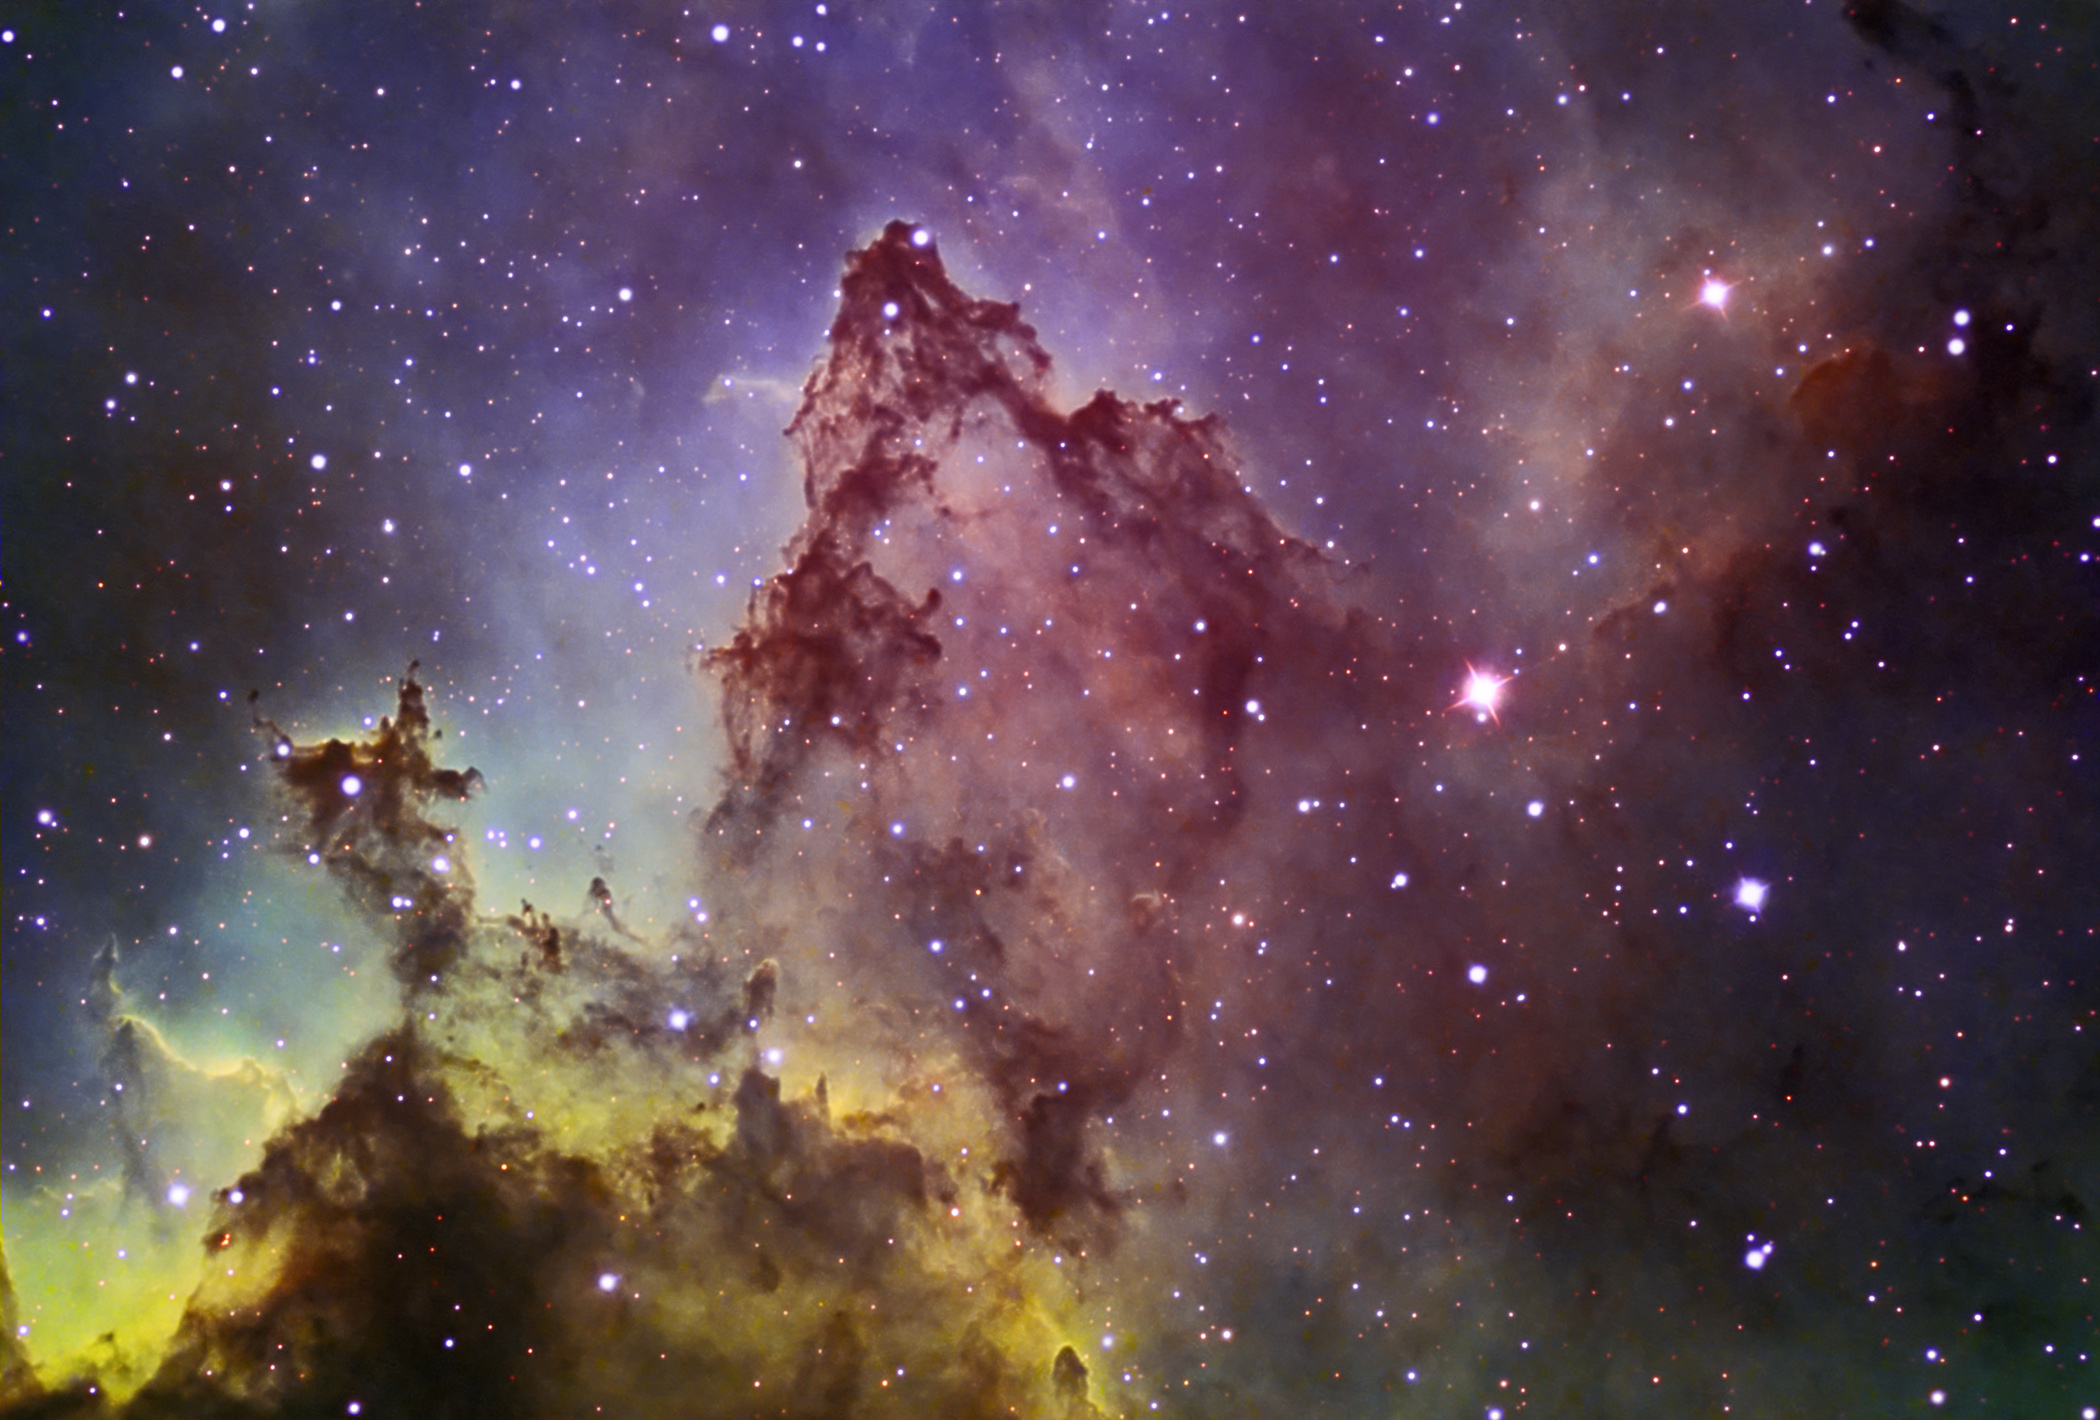 high resolution image using AstroDon narrowband filters of one part of 2100x1420